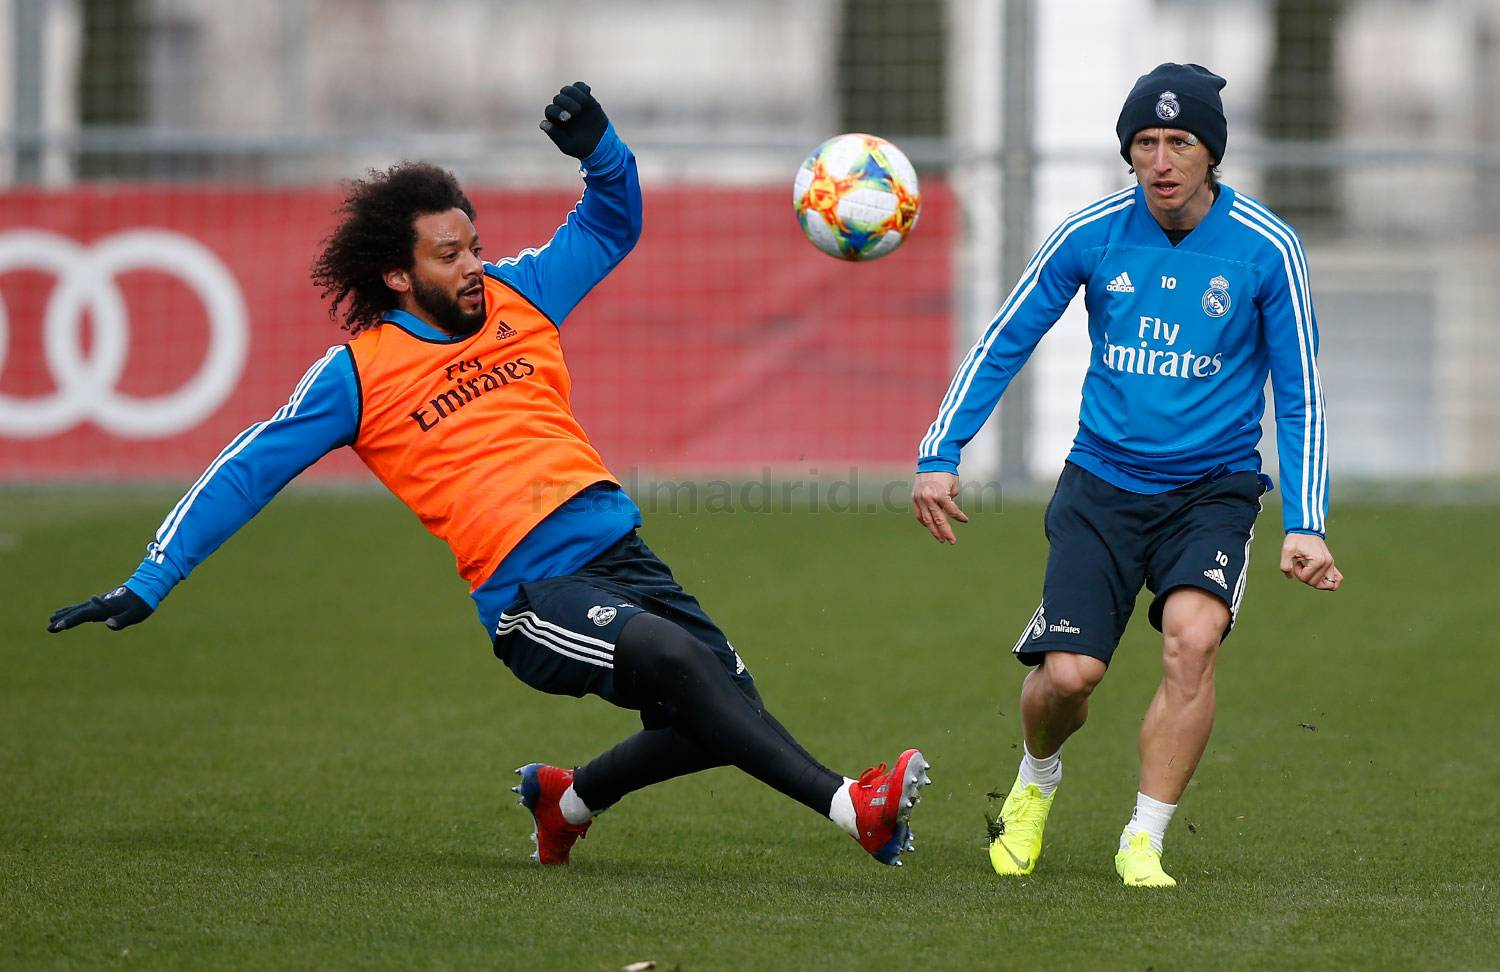 Real Madrid - Entrenamiento del Real Madrid - 22-01-2019